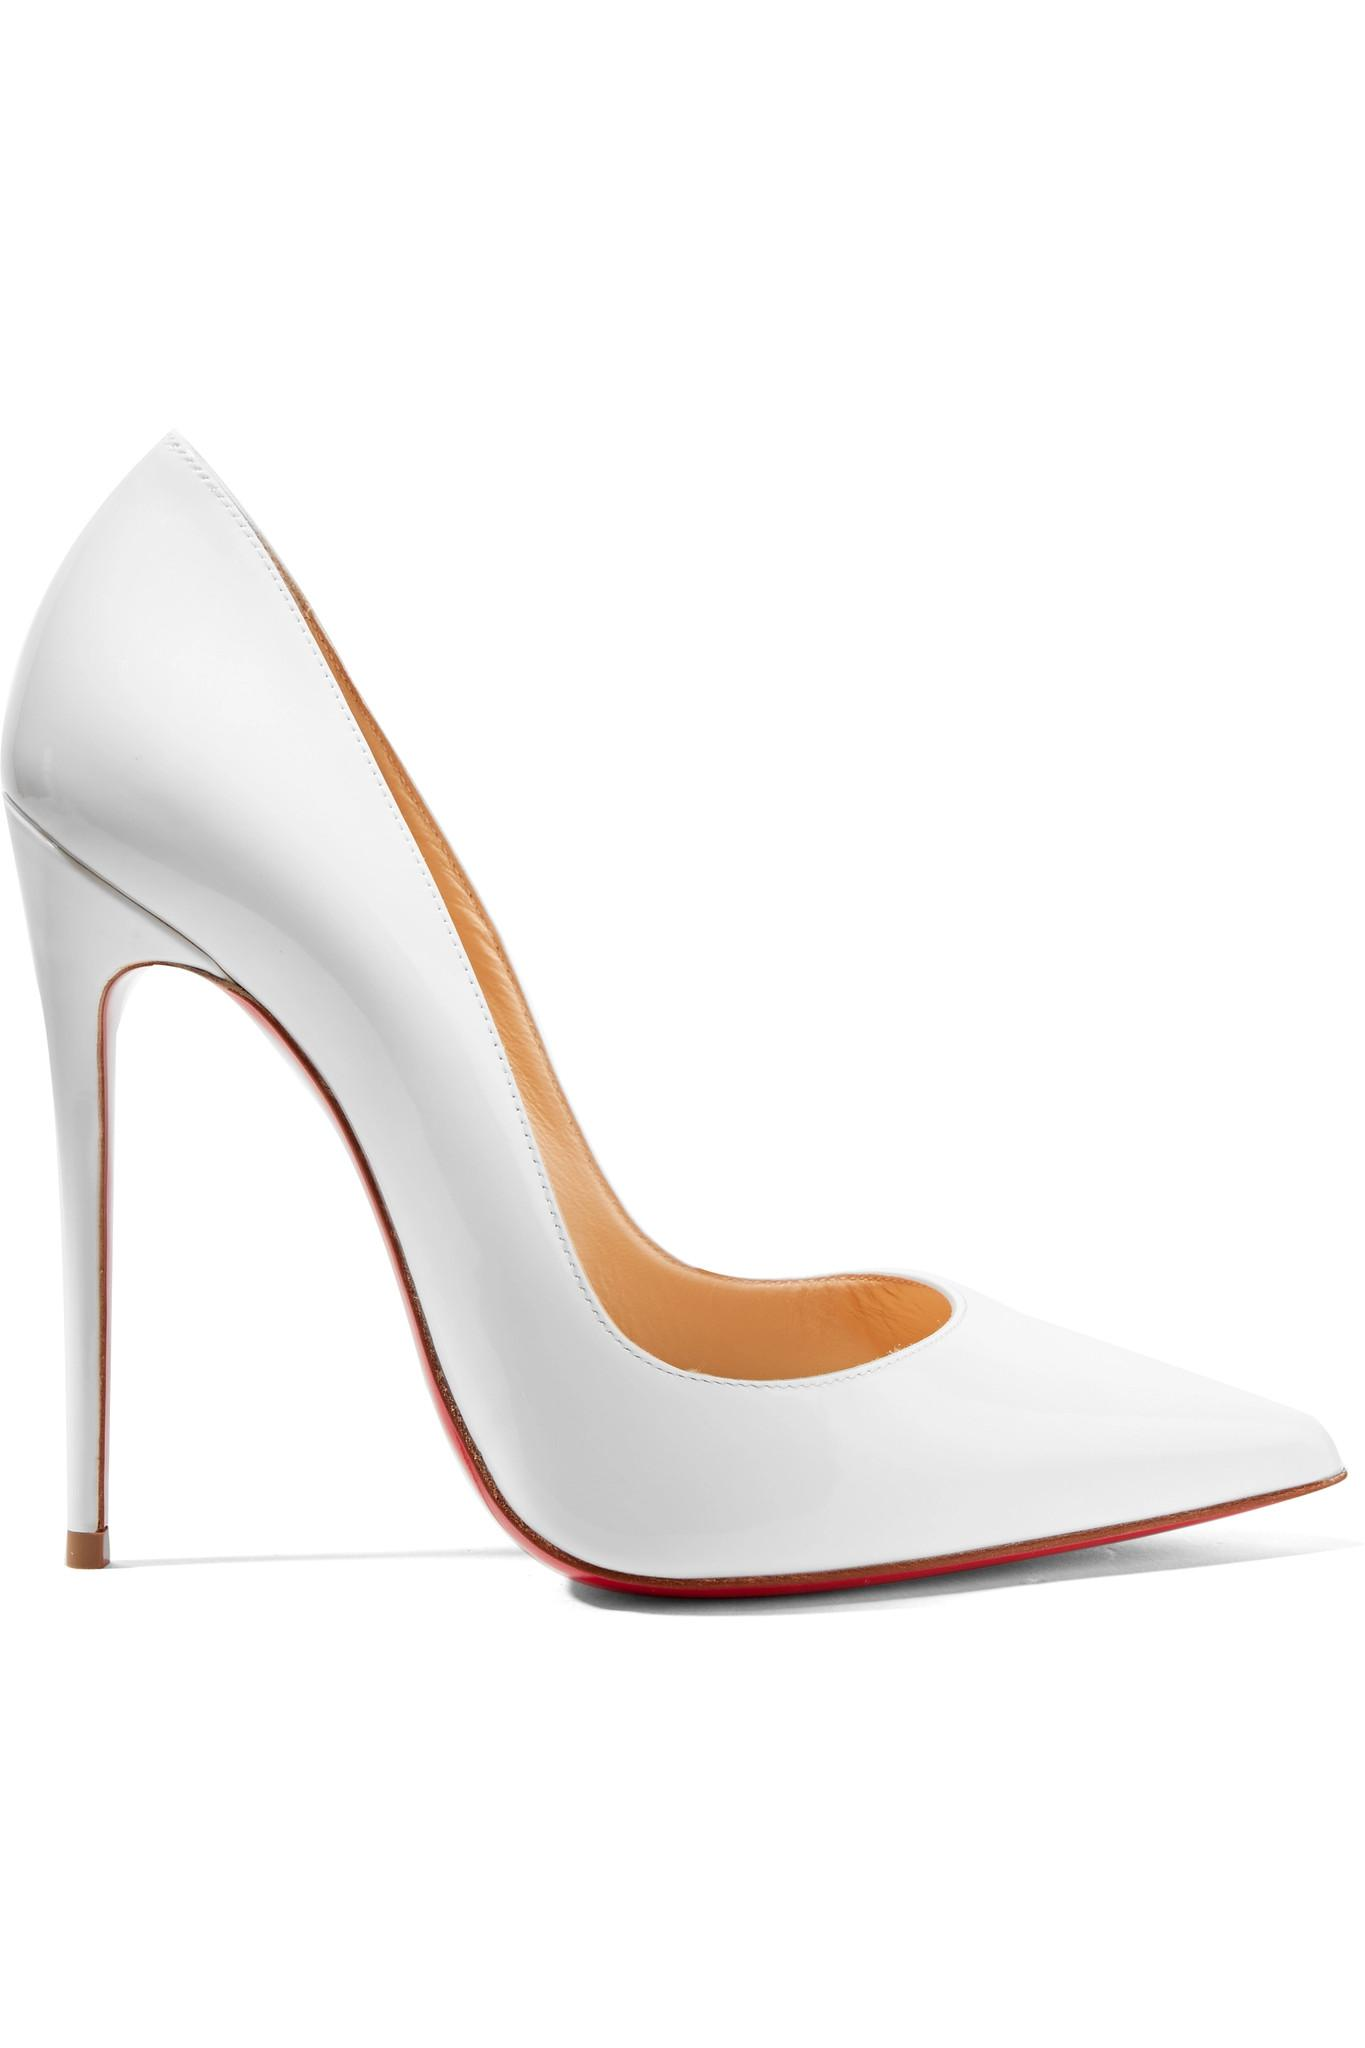 4267cc7fbb0d Christian Louboutin So Kate 120 Patent-leather Pumps in White - Lyst